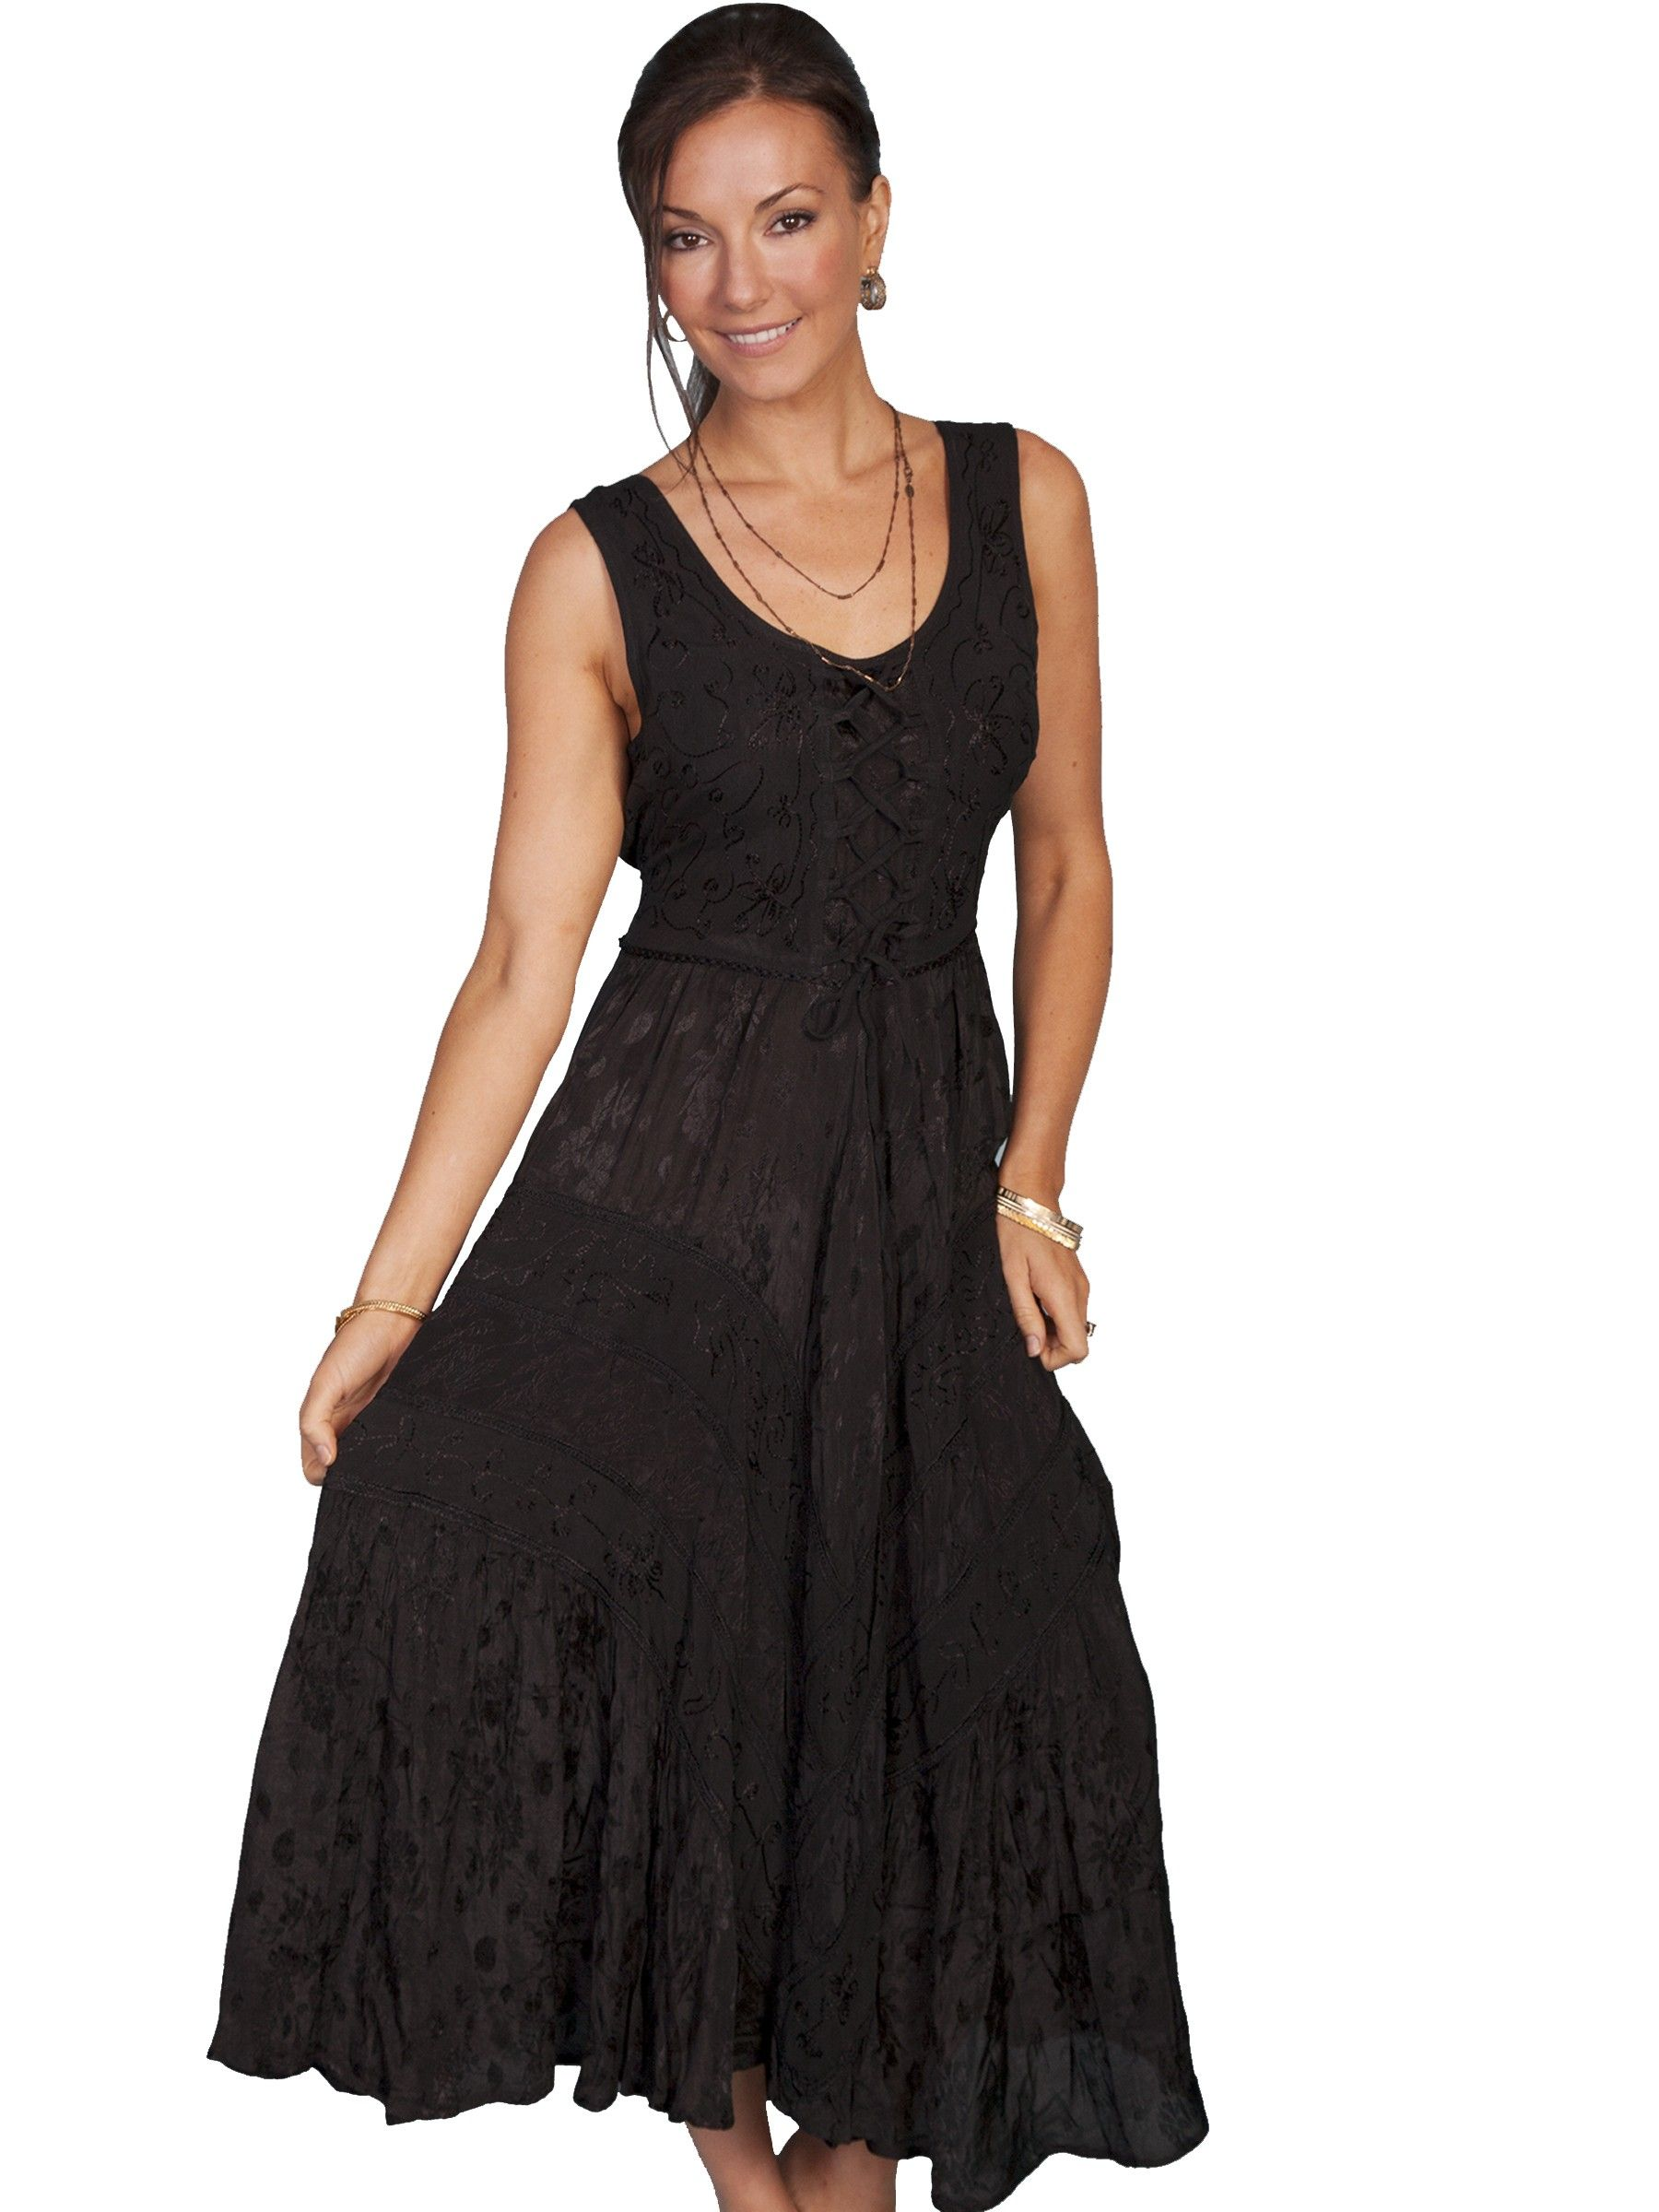 Leather wedding dress  Joeyus Canteen Cowgirl Dress in Black  New Arrivals  Pinterest